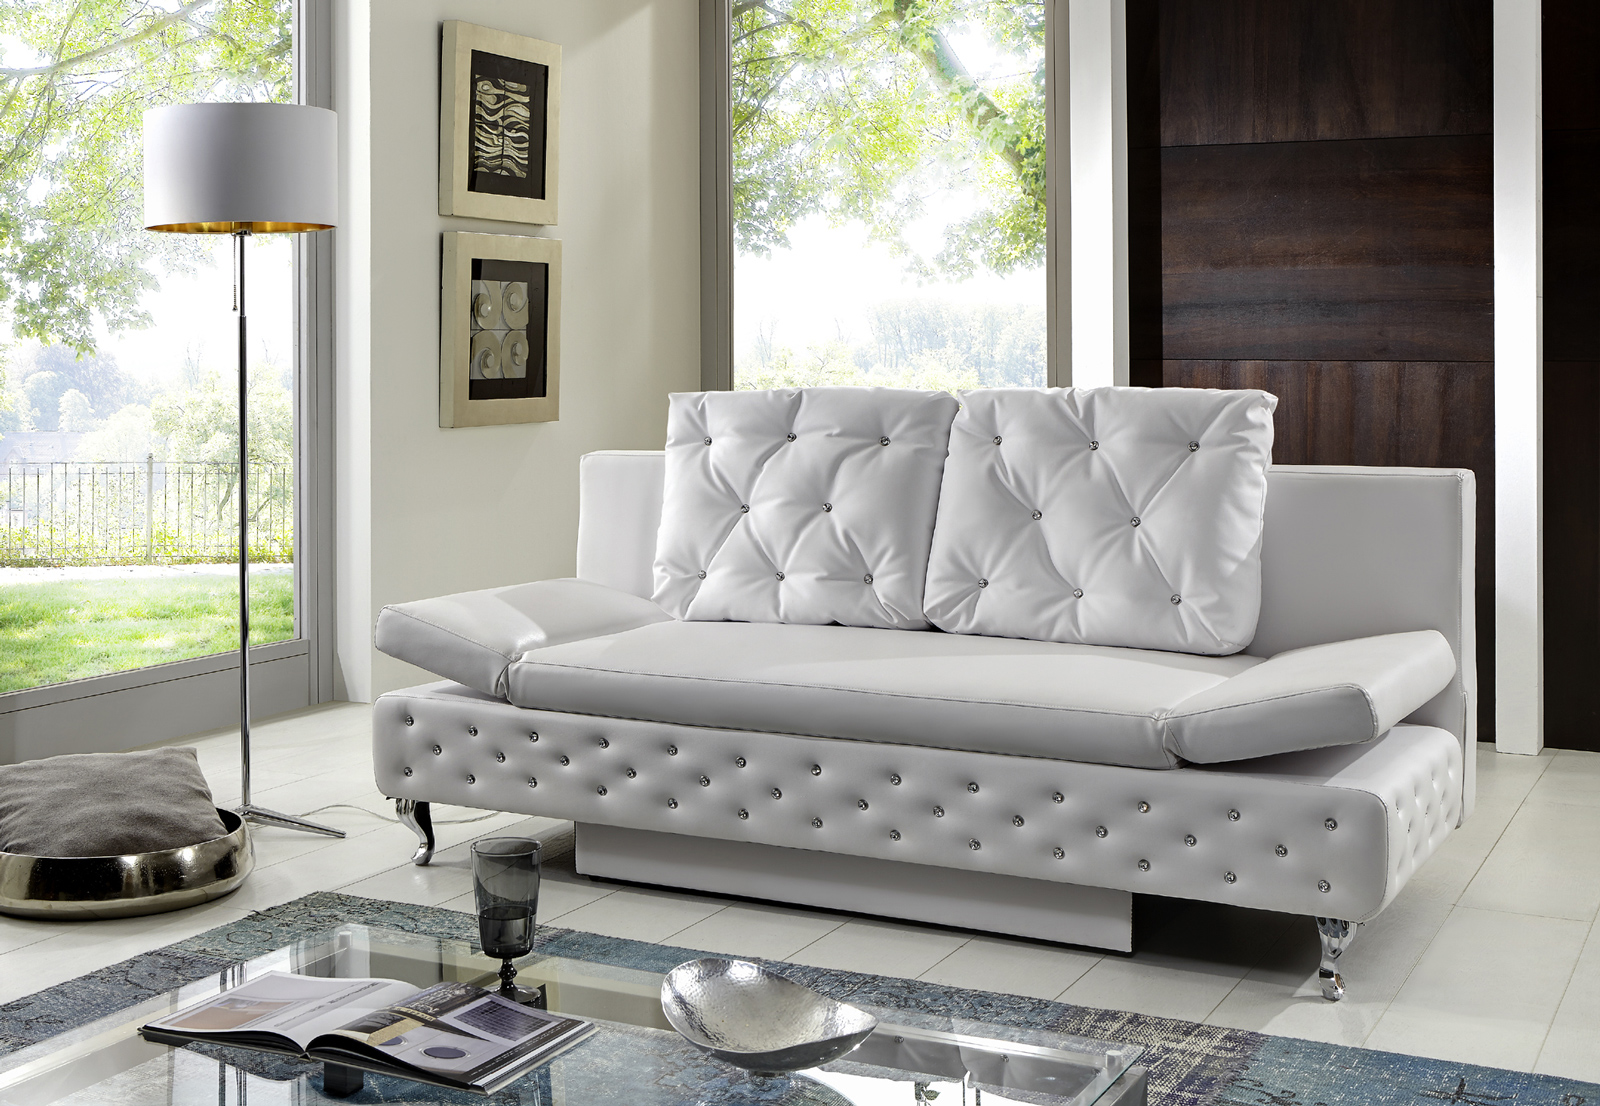 sam schlafsofa schlafcouch mit bettkasten wei 200 cm roxy. Black Bedroom Furniture Sets. Home Design Ideas